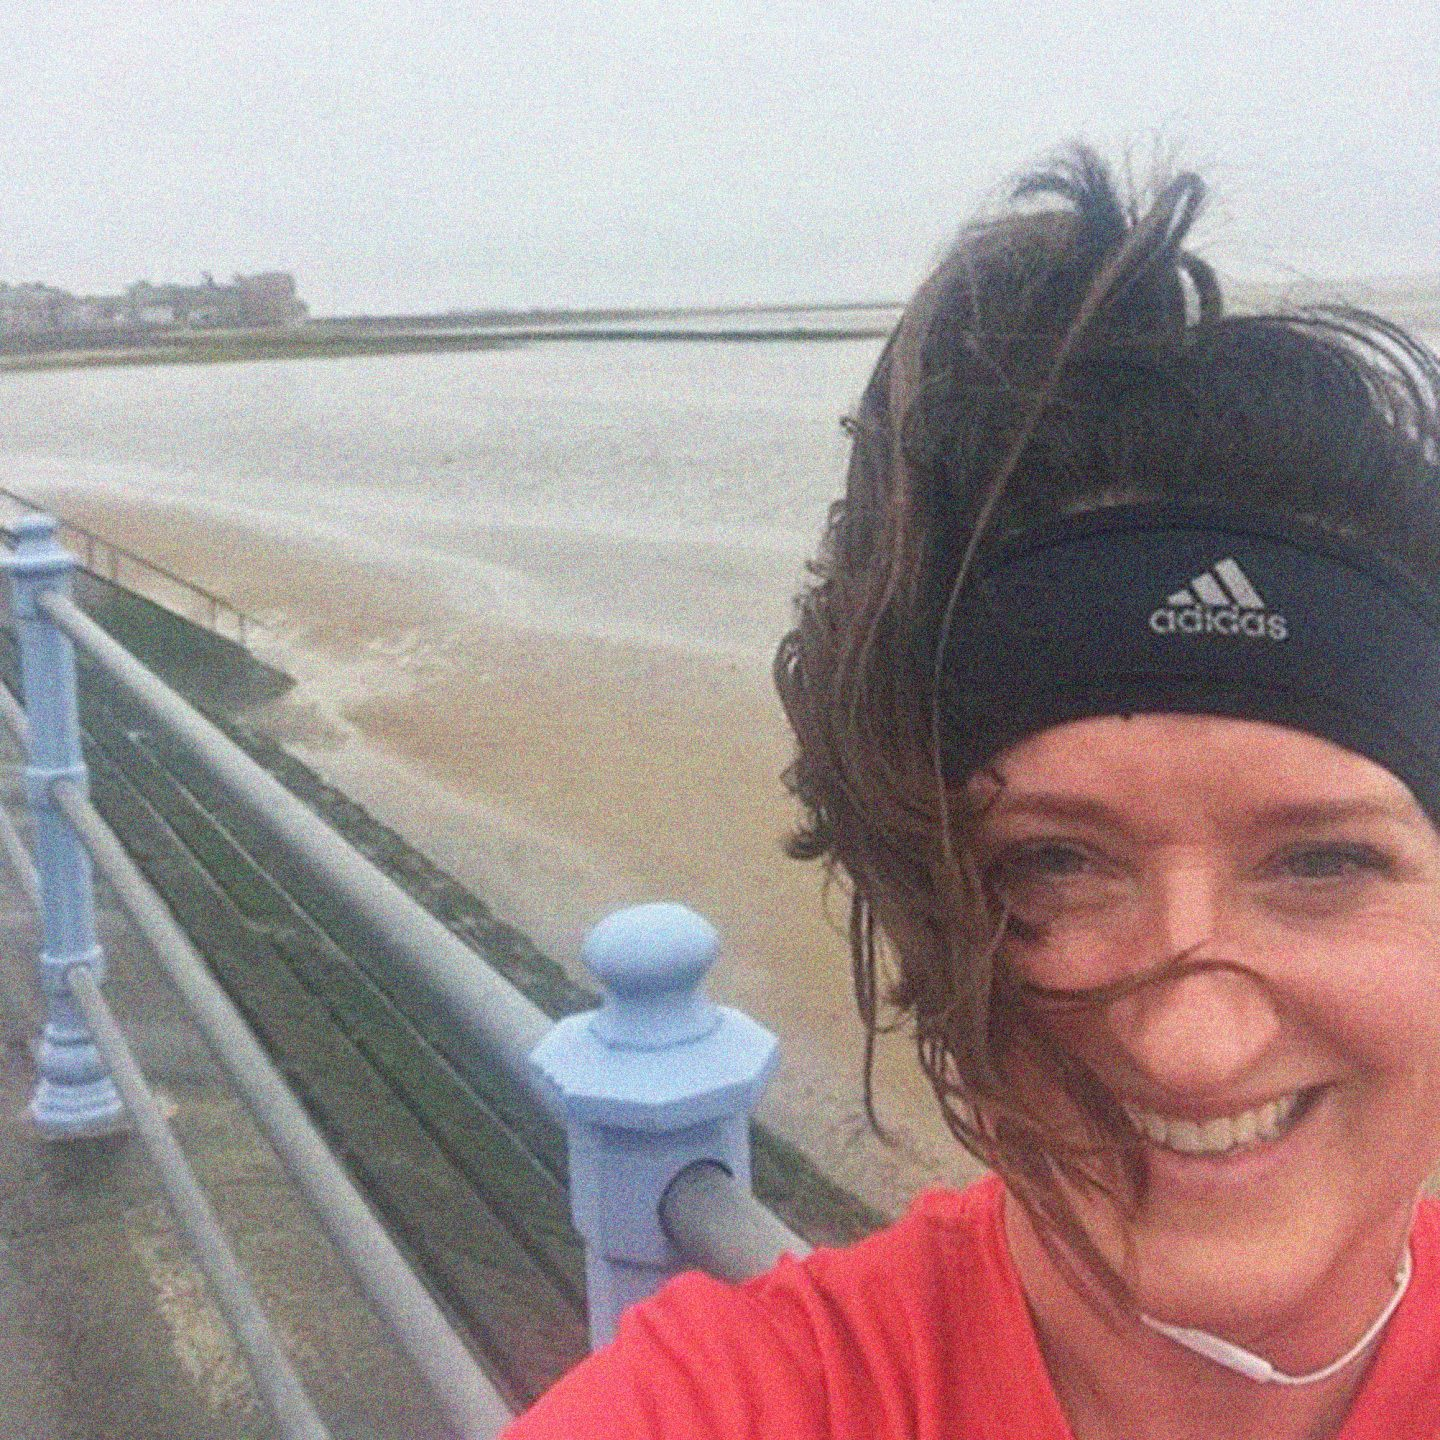 Woman smiling with adidas headband during run at Morecambe Bay, running, 1000, miles, sport. fitness, employee, adidas